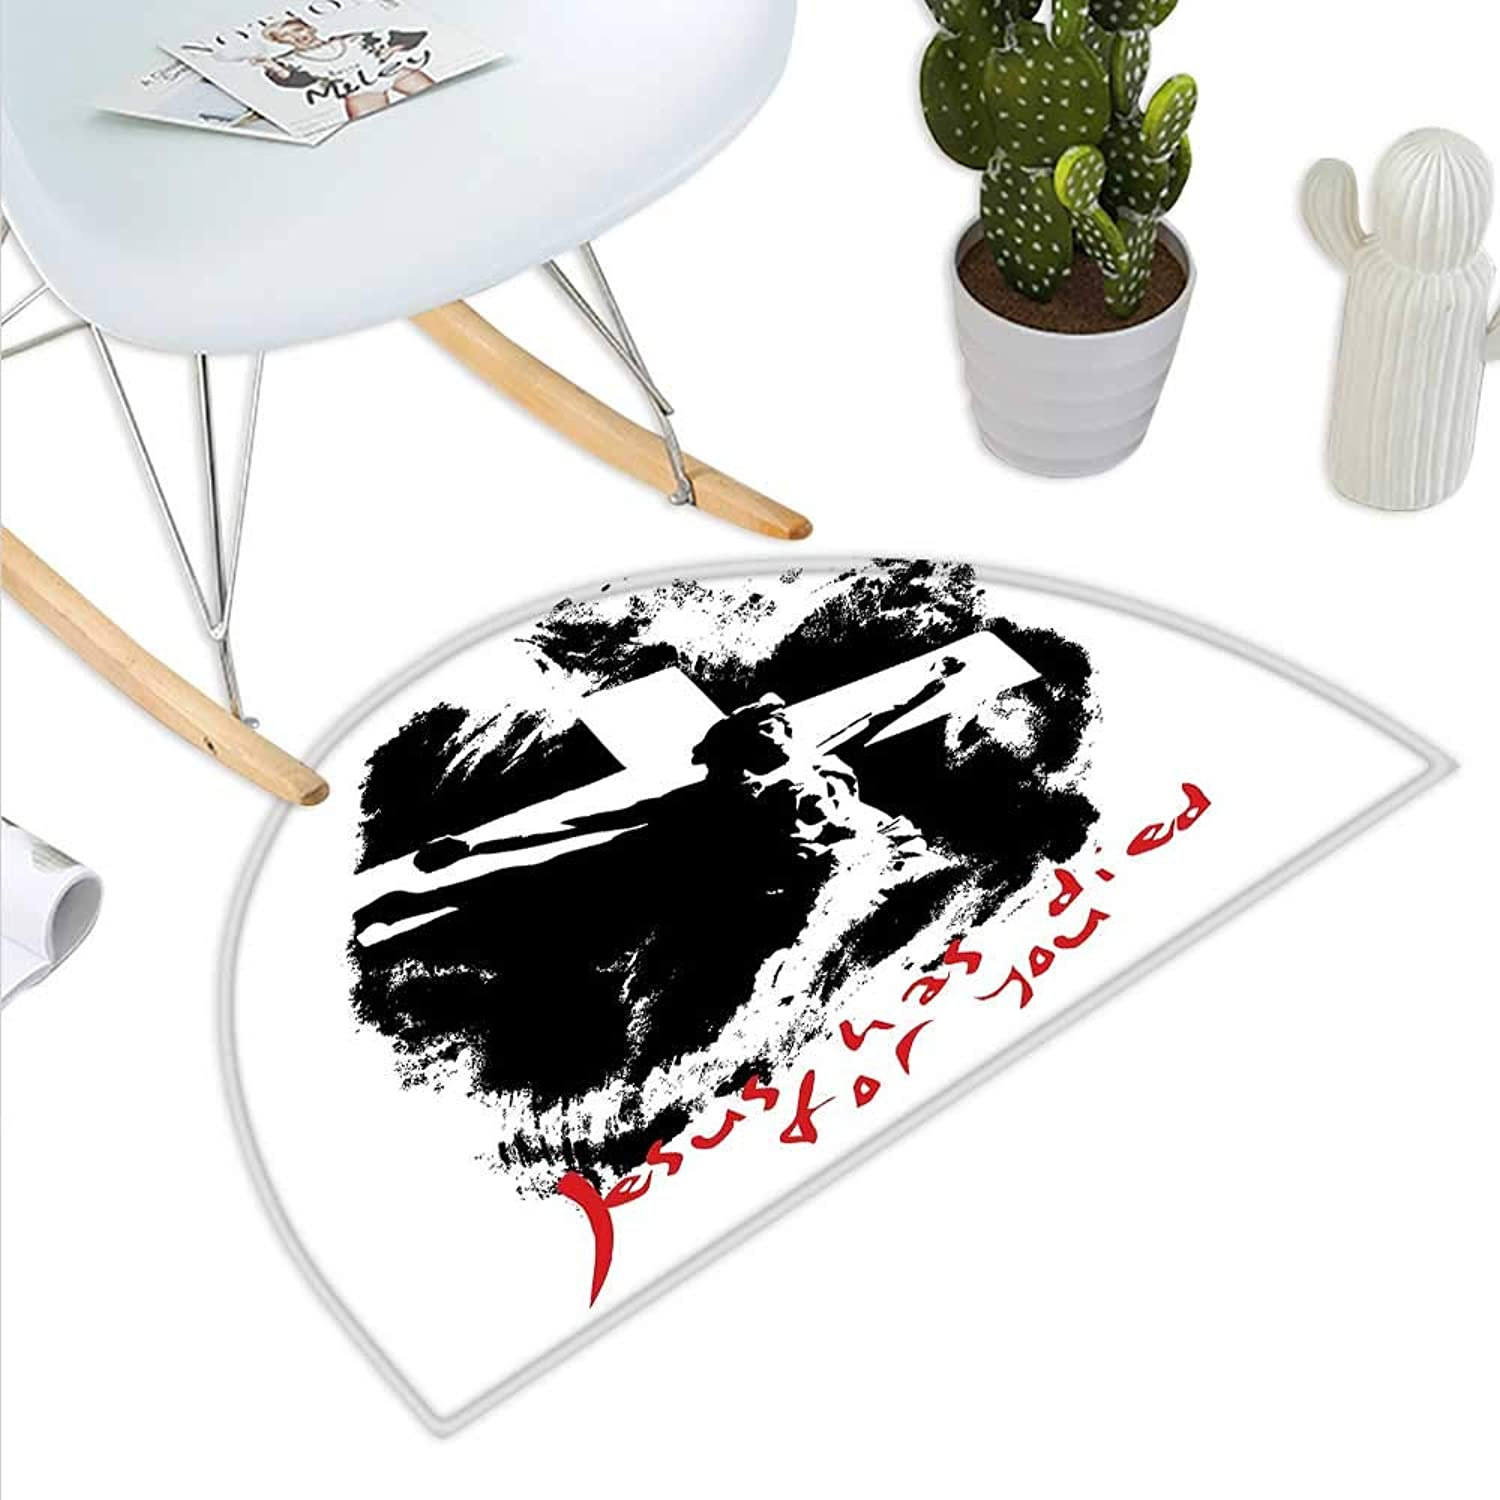 Quote Semicircle Doormat Grunge Style Image on The Cross Scenery and He Has Died for Your Sins Phrase Halfmoon doormats H 39.3  xD 59  Black White Red